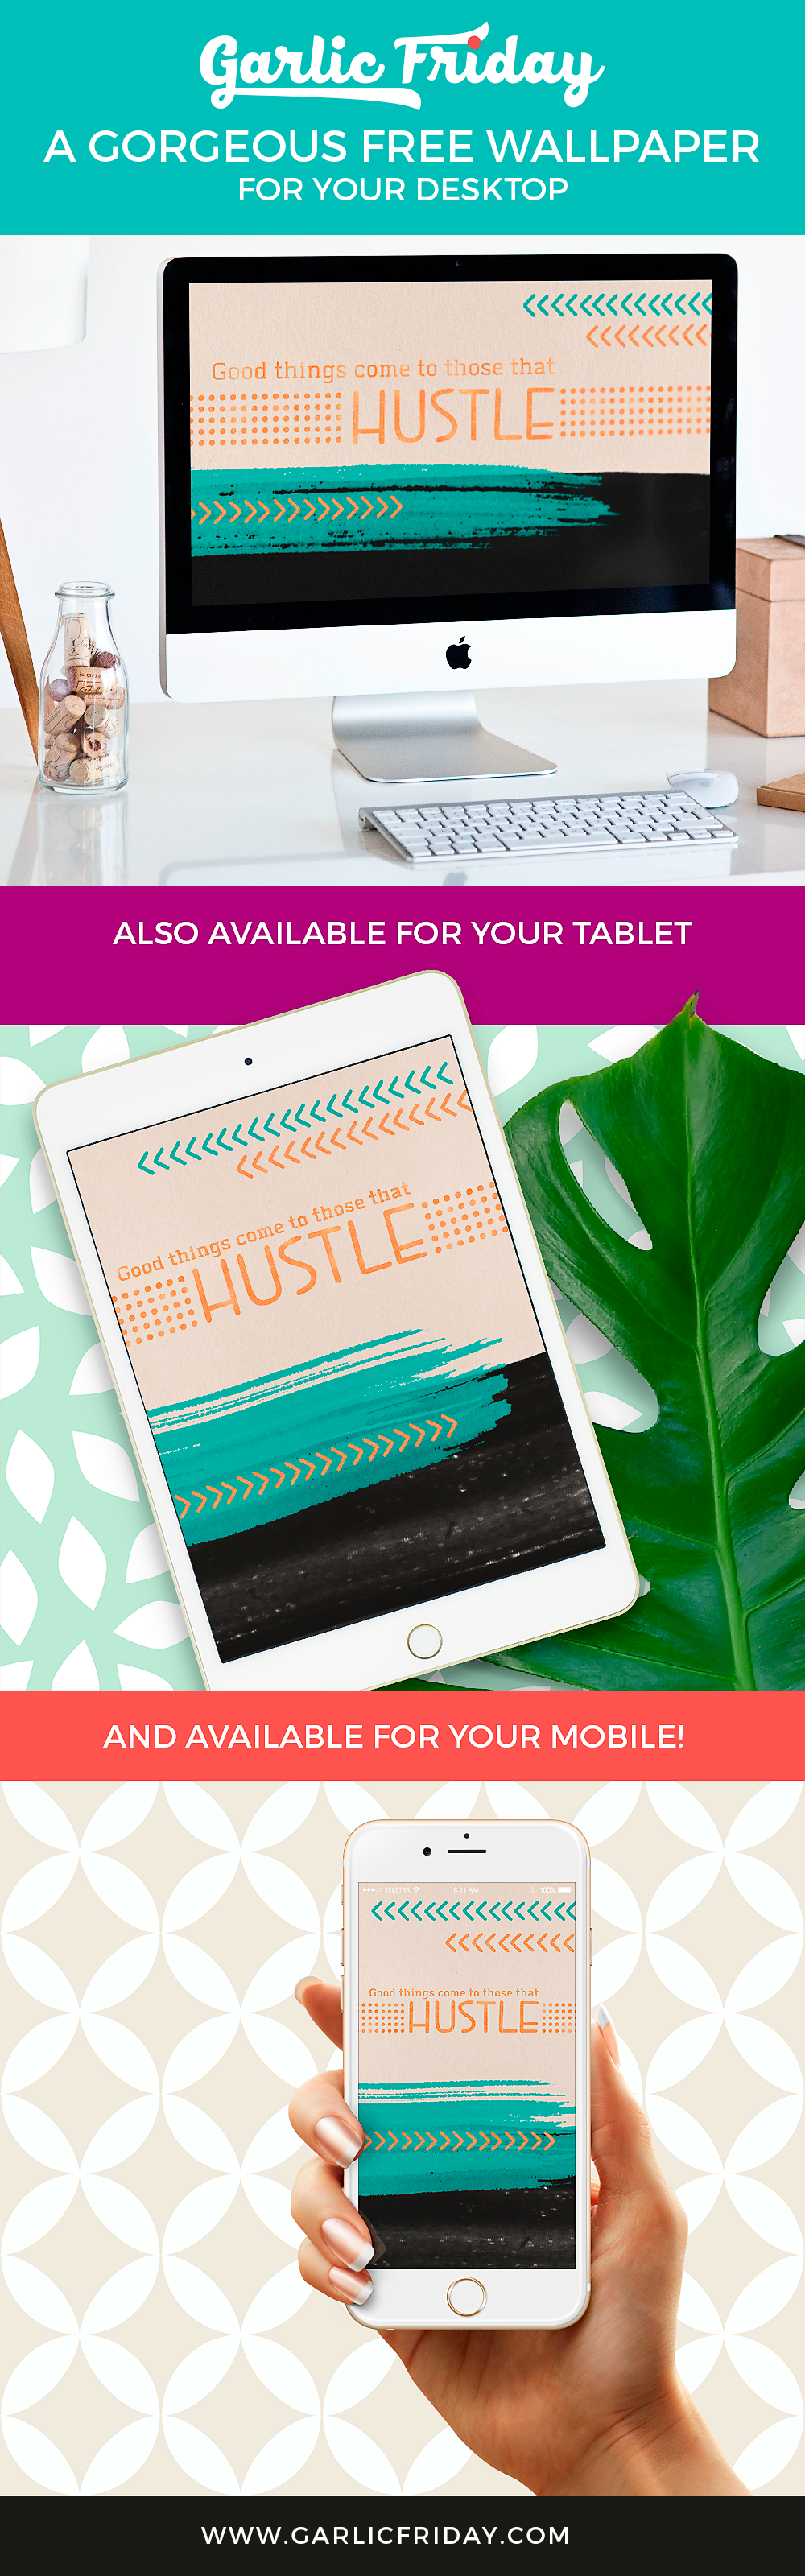 Download our gorgeous motivational wallpaper for your desktop, tablet and phone! March freebie from Garlic Friday Graphic Design #sheboss #bossgirl #hustle #free